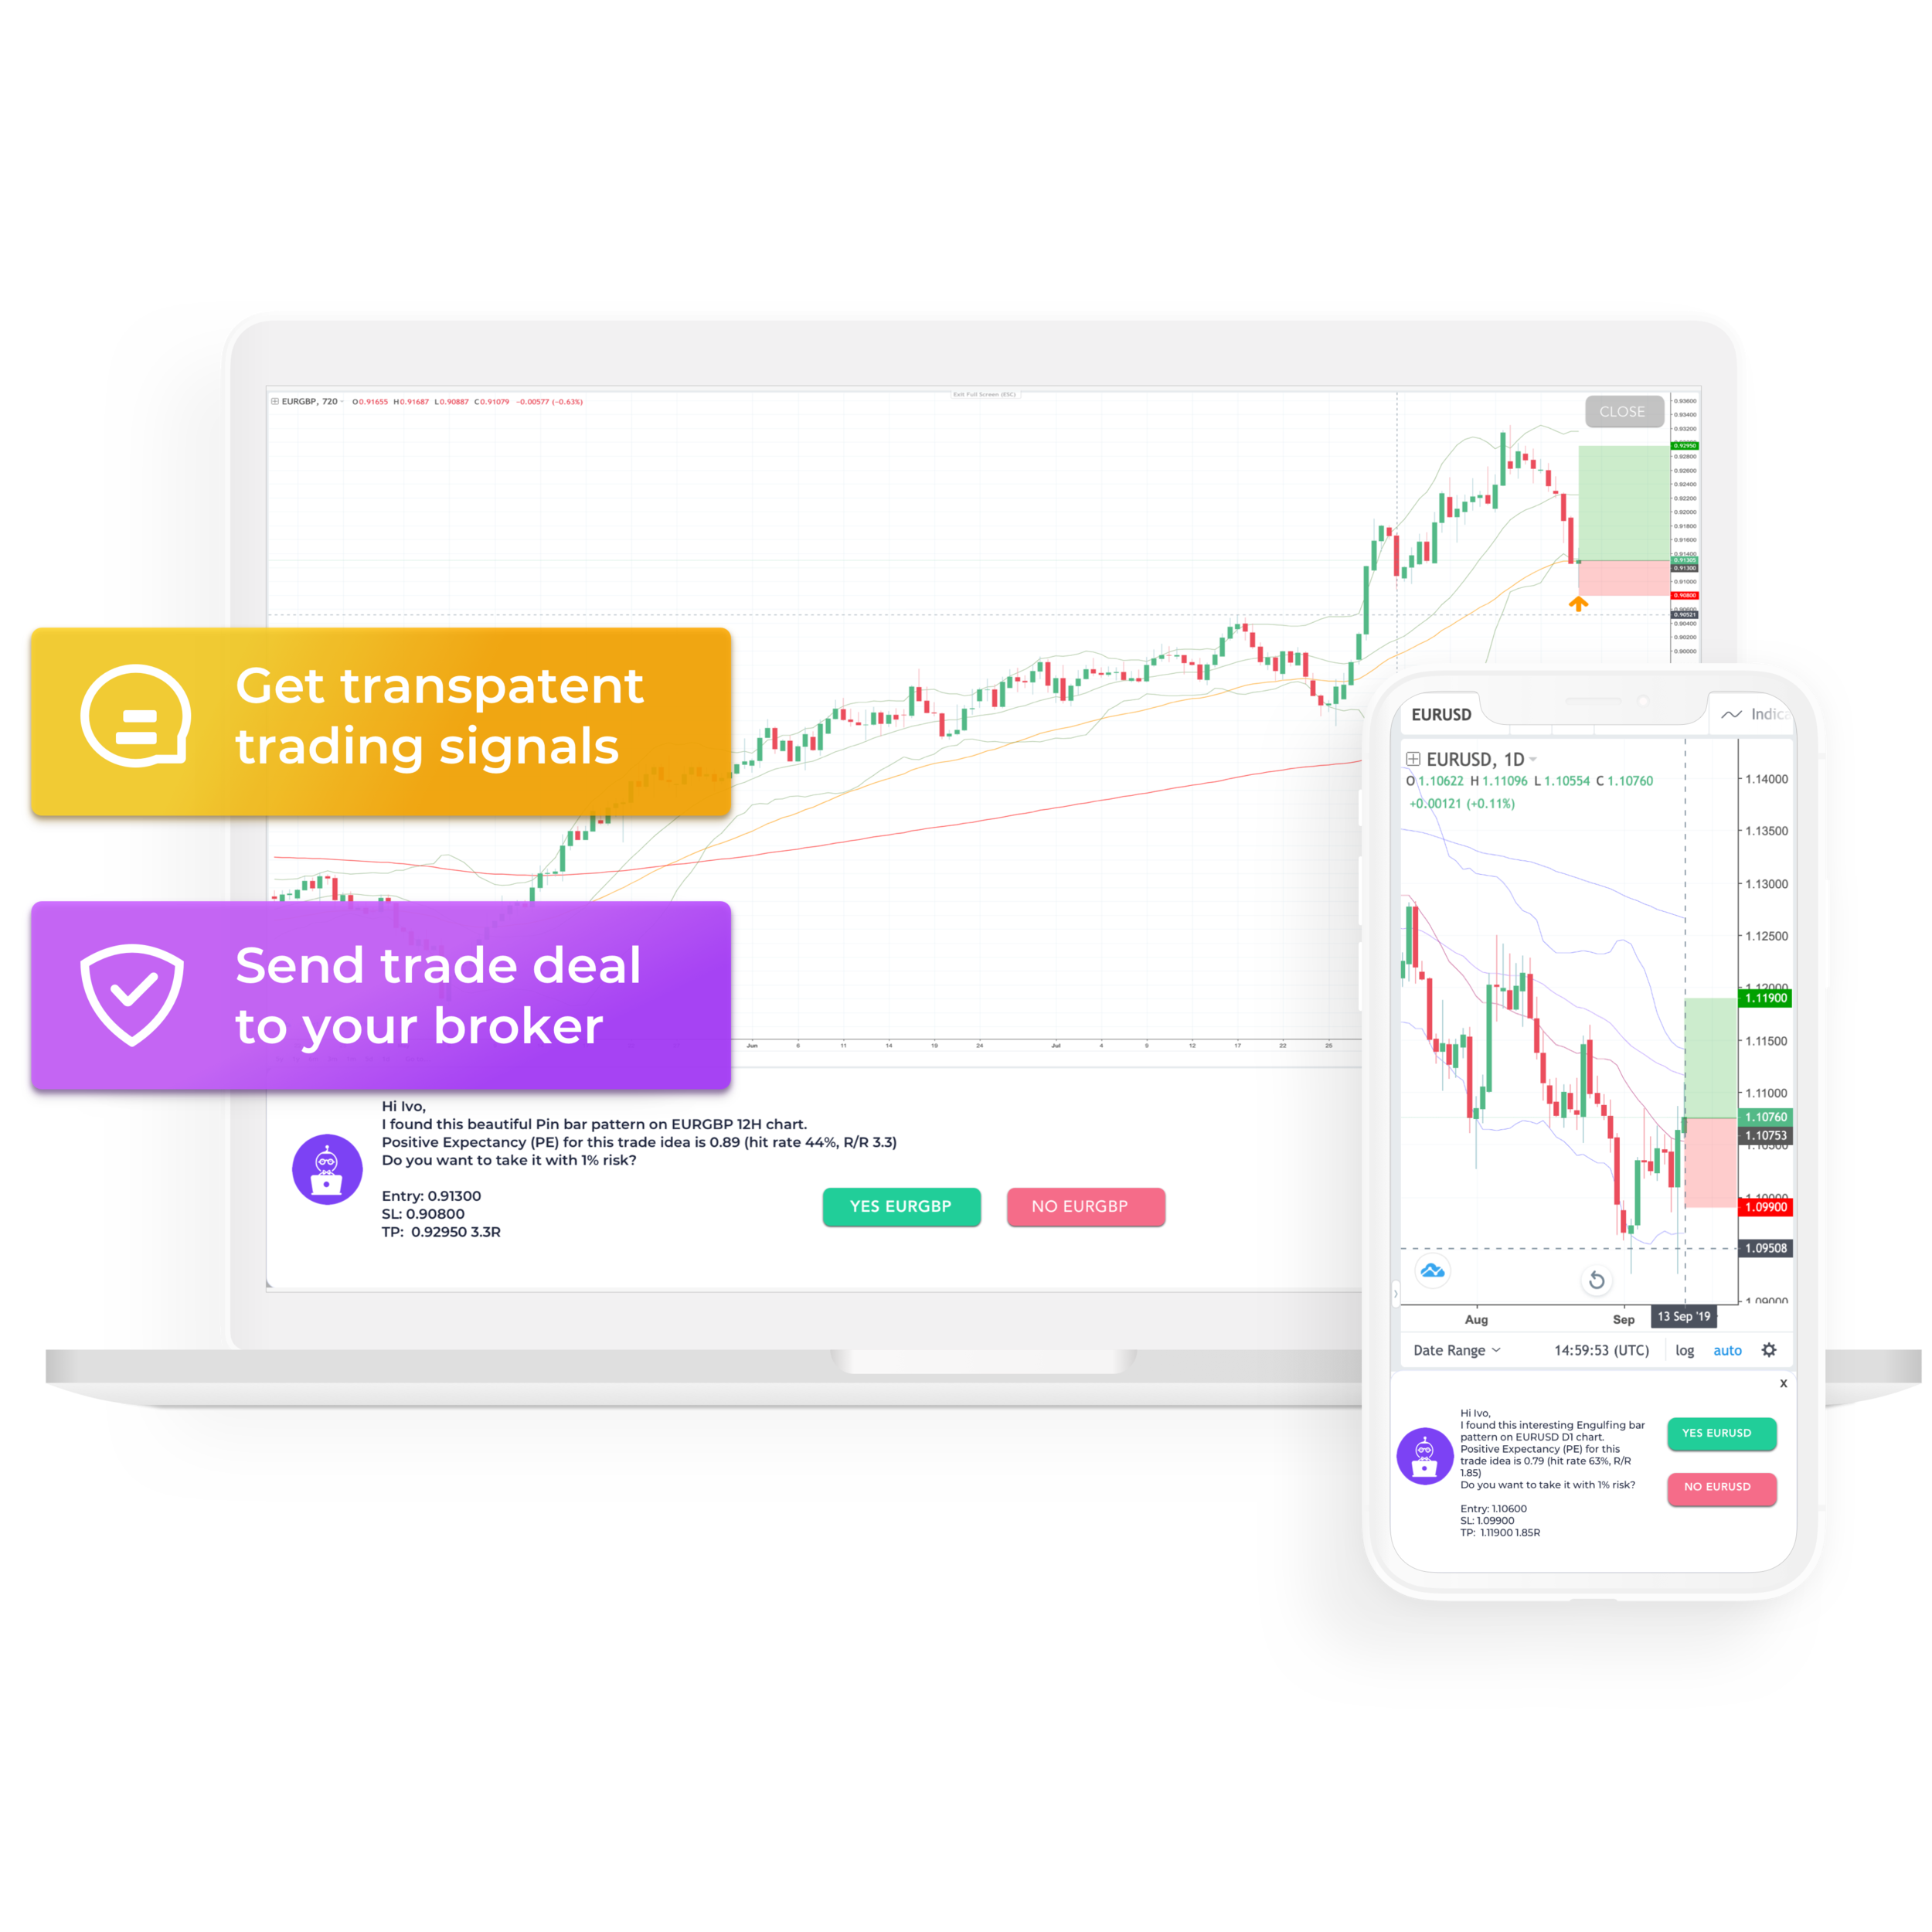 INTEGRATE WITH BROKERSConnect your existing broker - Send trading deals with a single click to your existing broker - MT4 integration available now